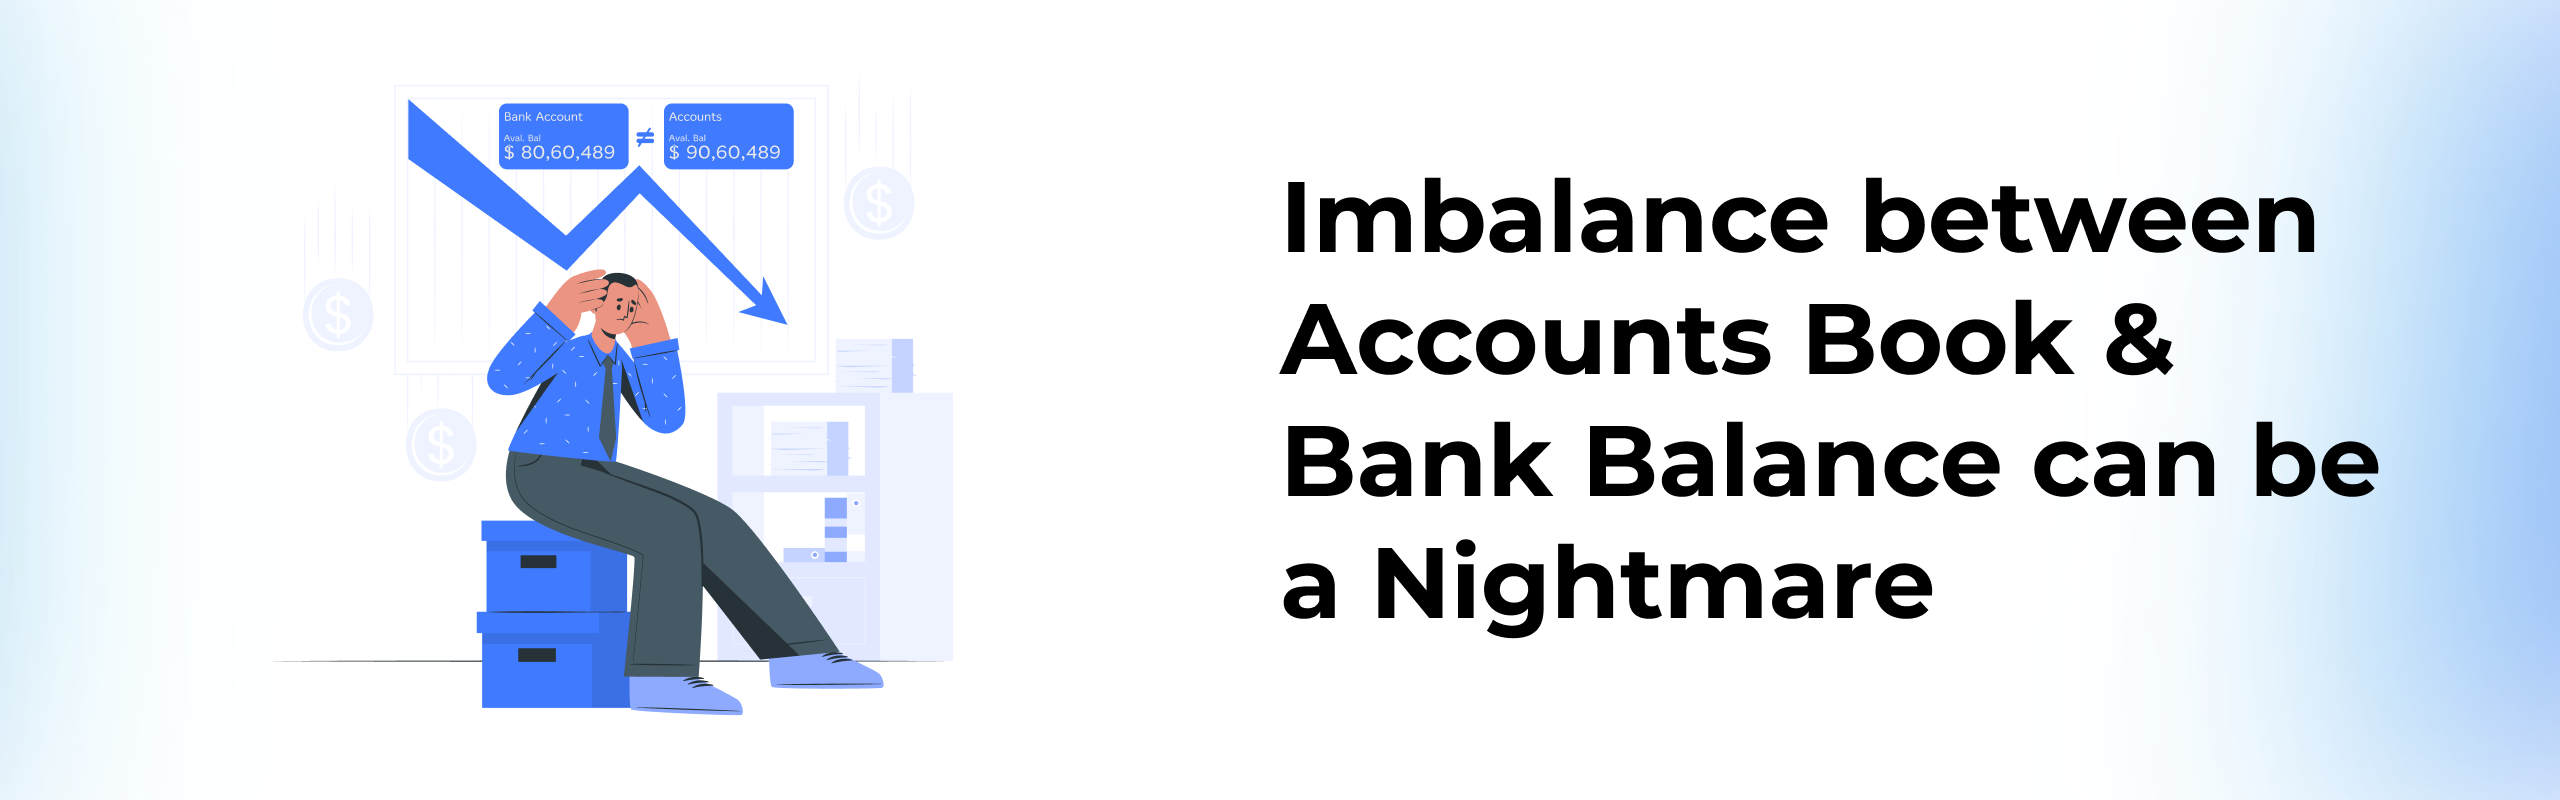 Imbalance between accounting books and bank balance can be a nightmare